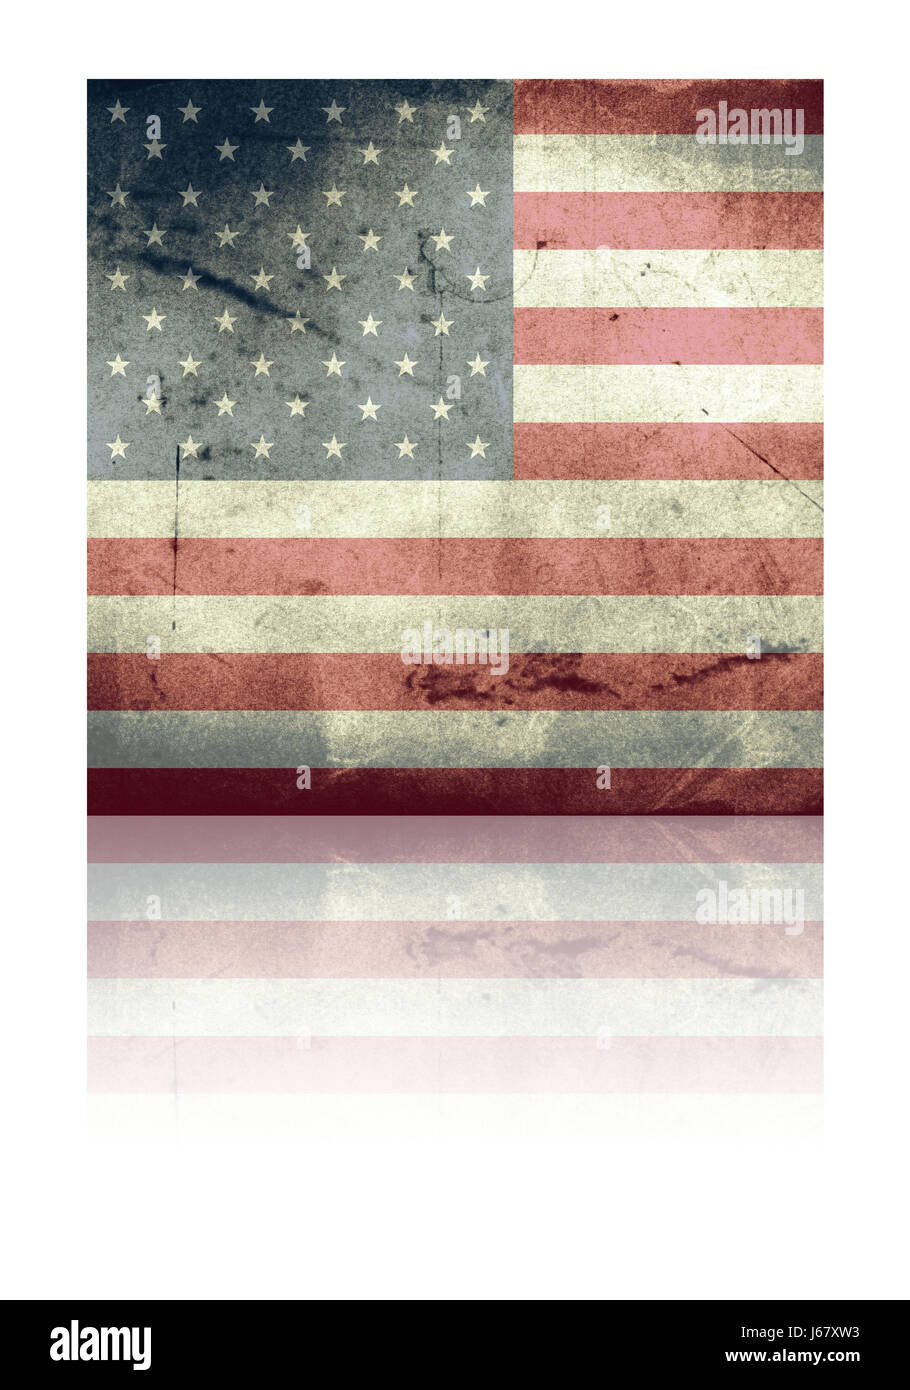 usa flag grunge version - Stock Image